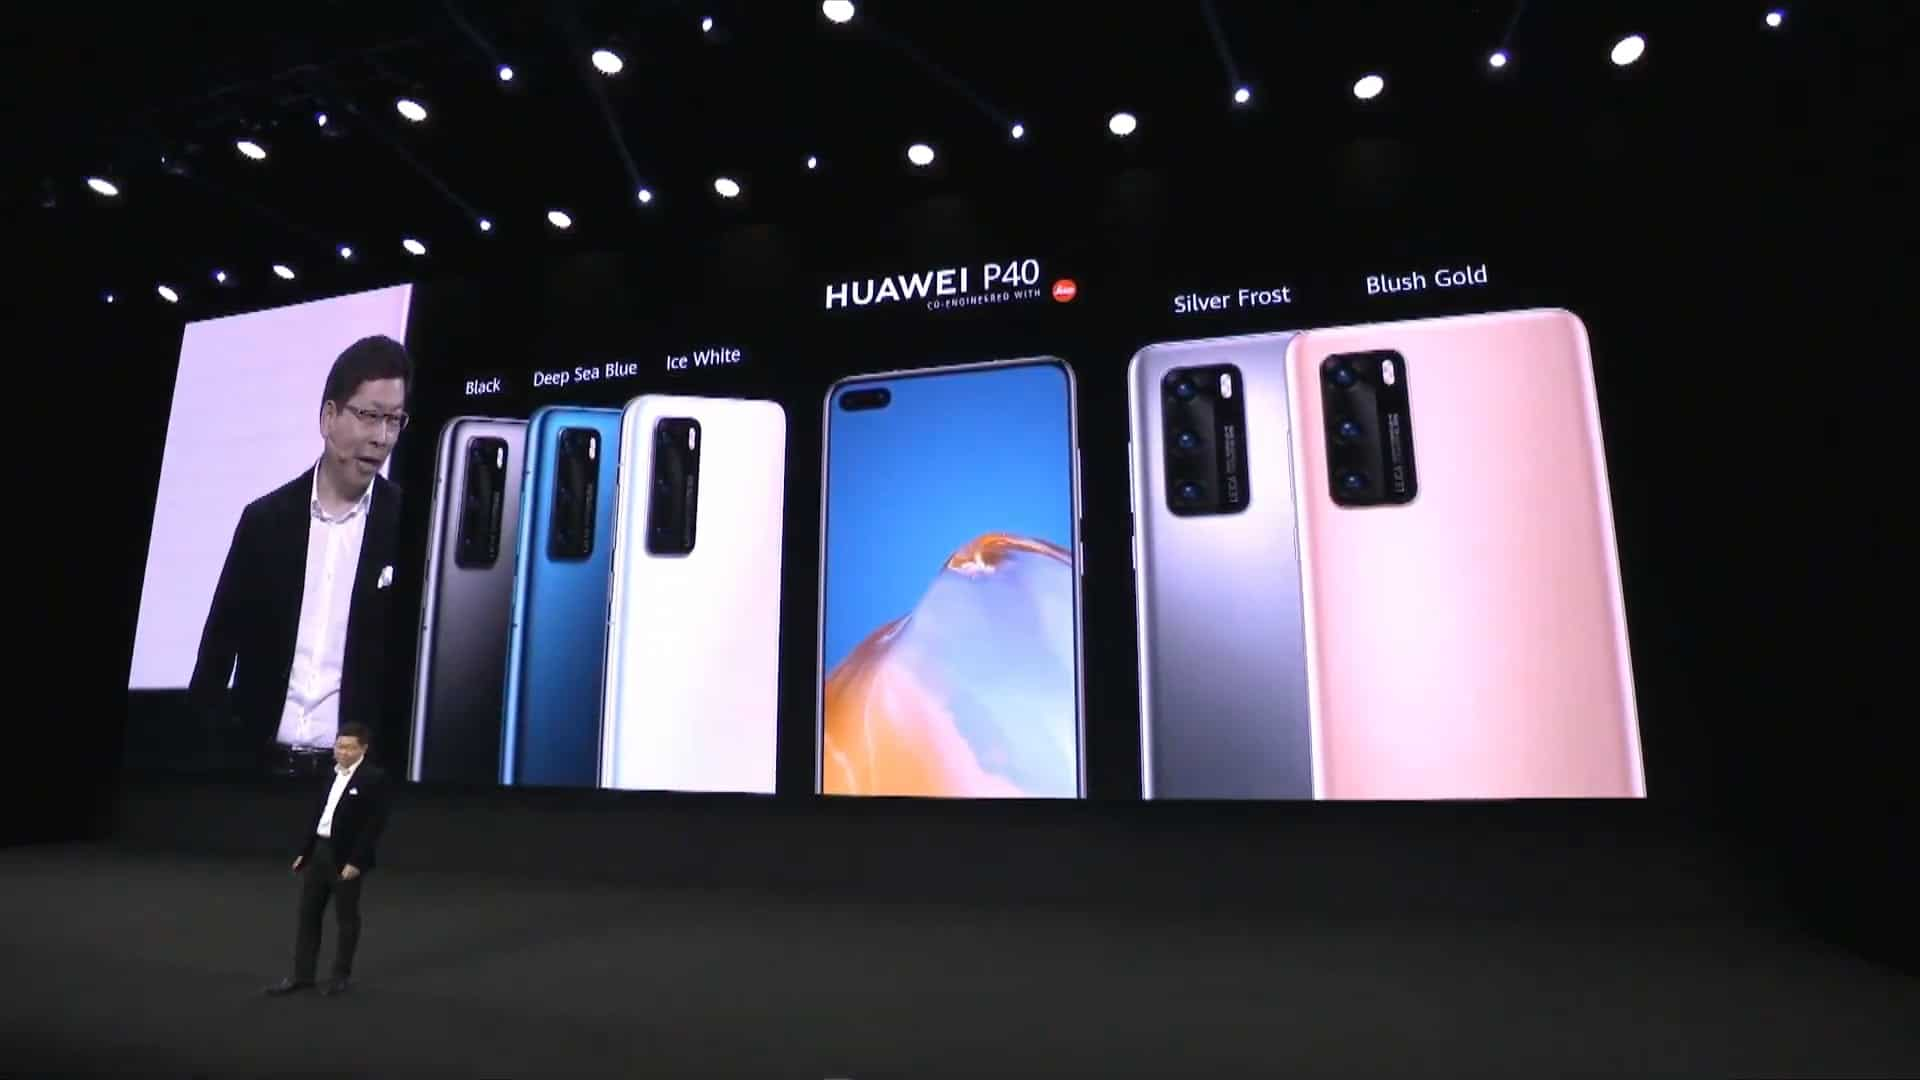 Huawei P40 series event image 4